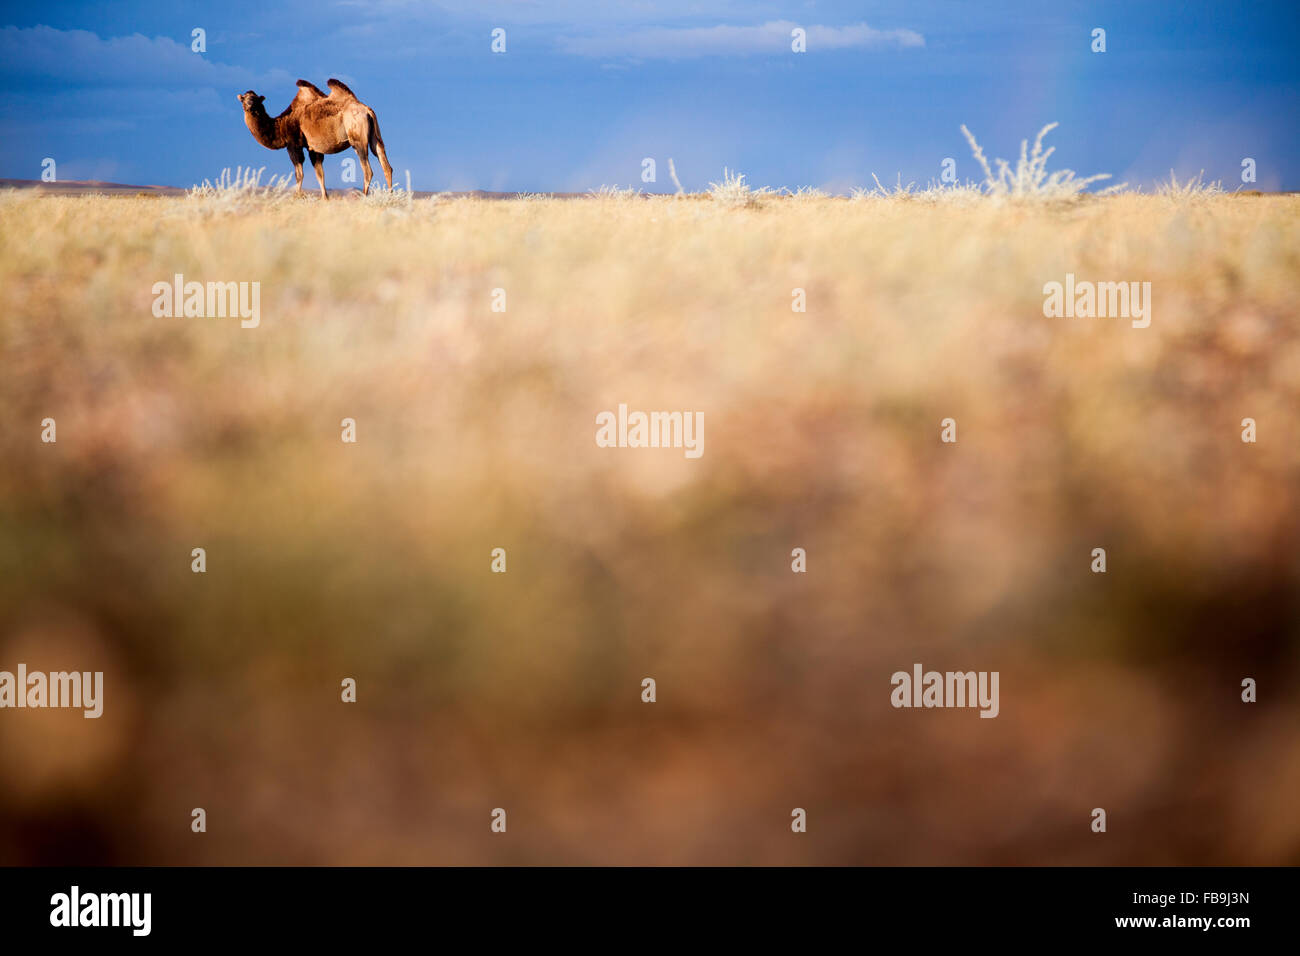 A Bactrian camel in the Gobi Desert, Mongolia. - Stock Image